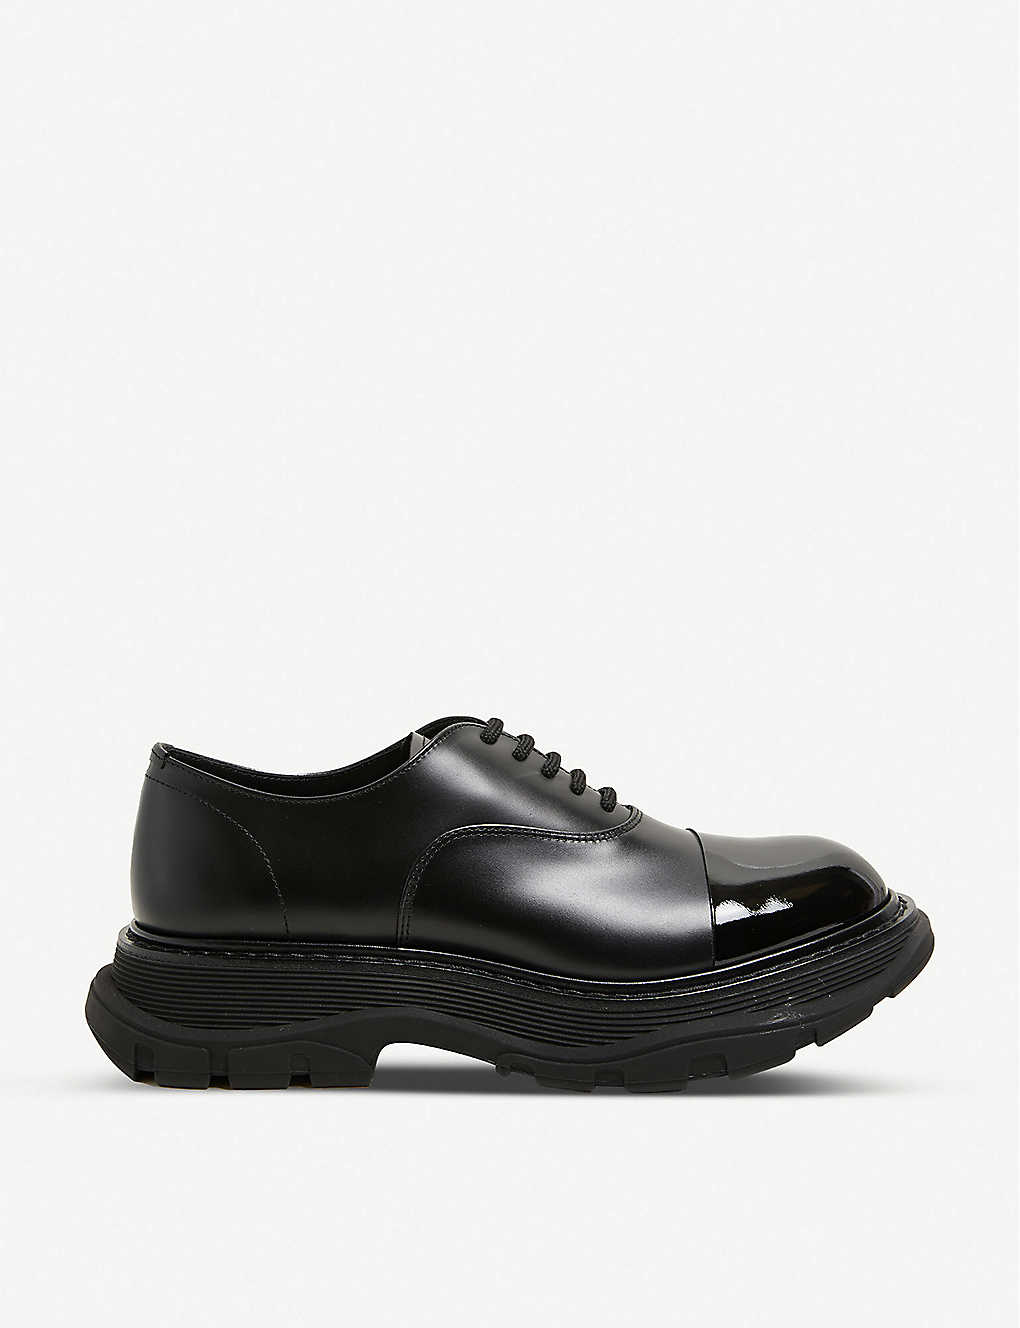 ALEXANDER MCQUEEN: Hybrid Toe Cap leather shoes